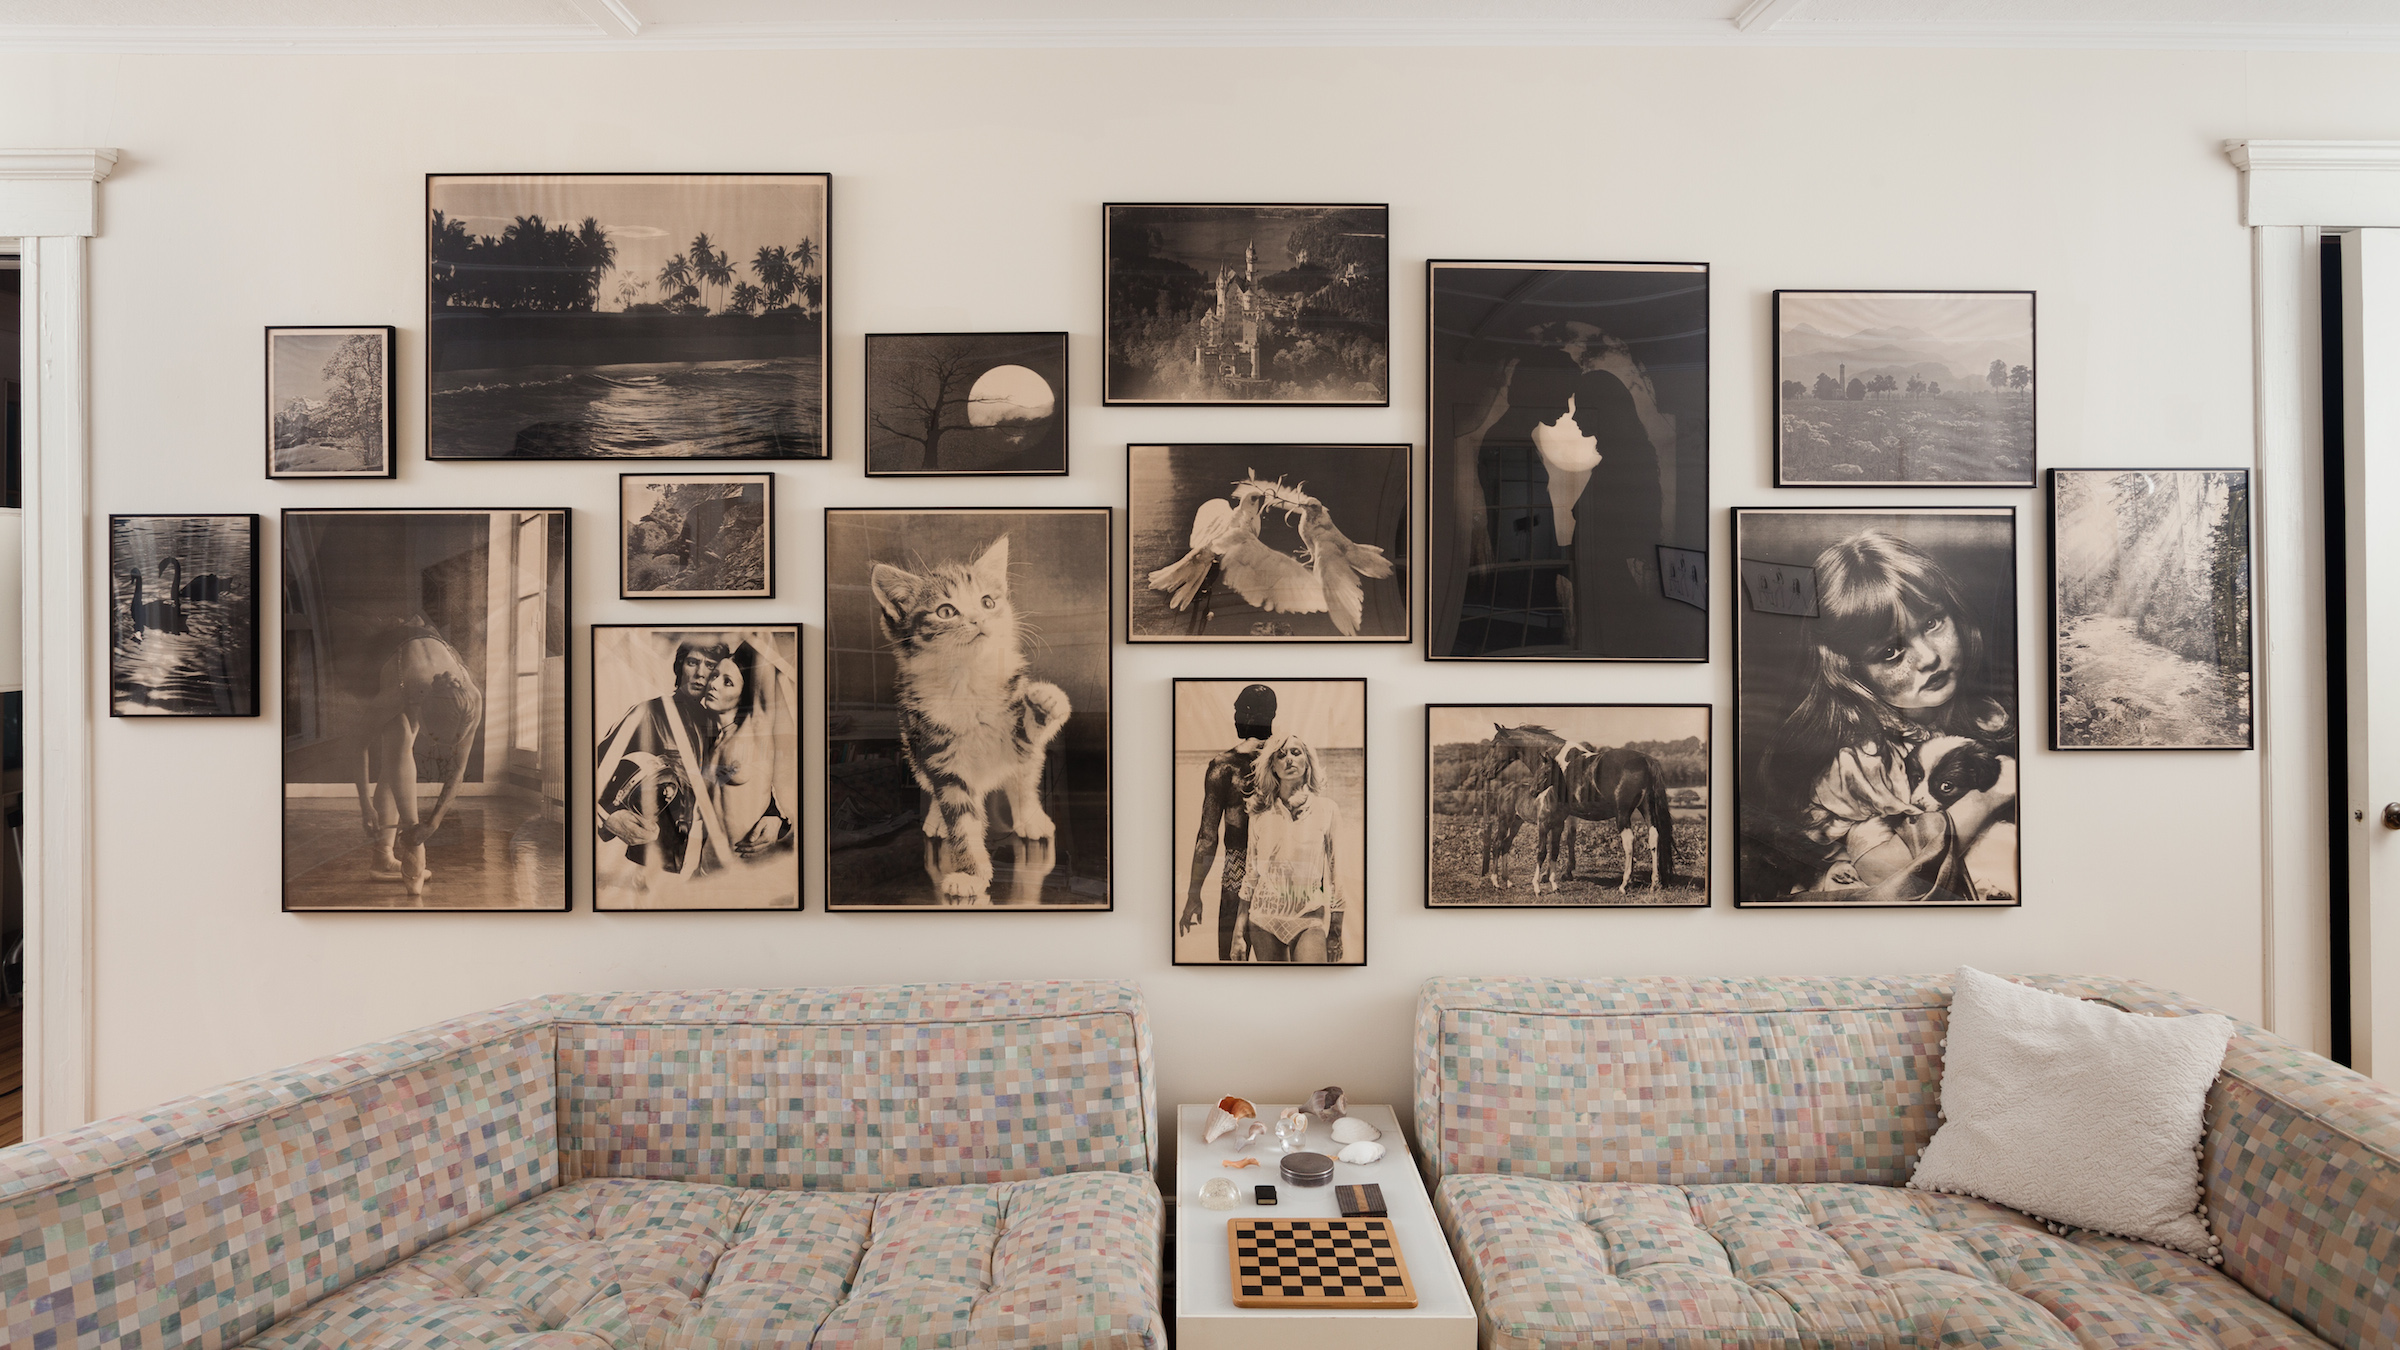 Hans Peter Feldmann,  Sonntagsbilder (Sunday Images)   , 1976-77, set of 16 screenprints from portfolio of 21, 5 largest: 24.25 x 34.25 in; 2 smallest 13 x 10.25 in